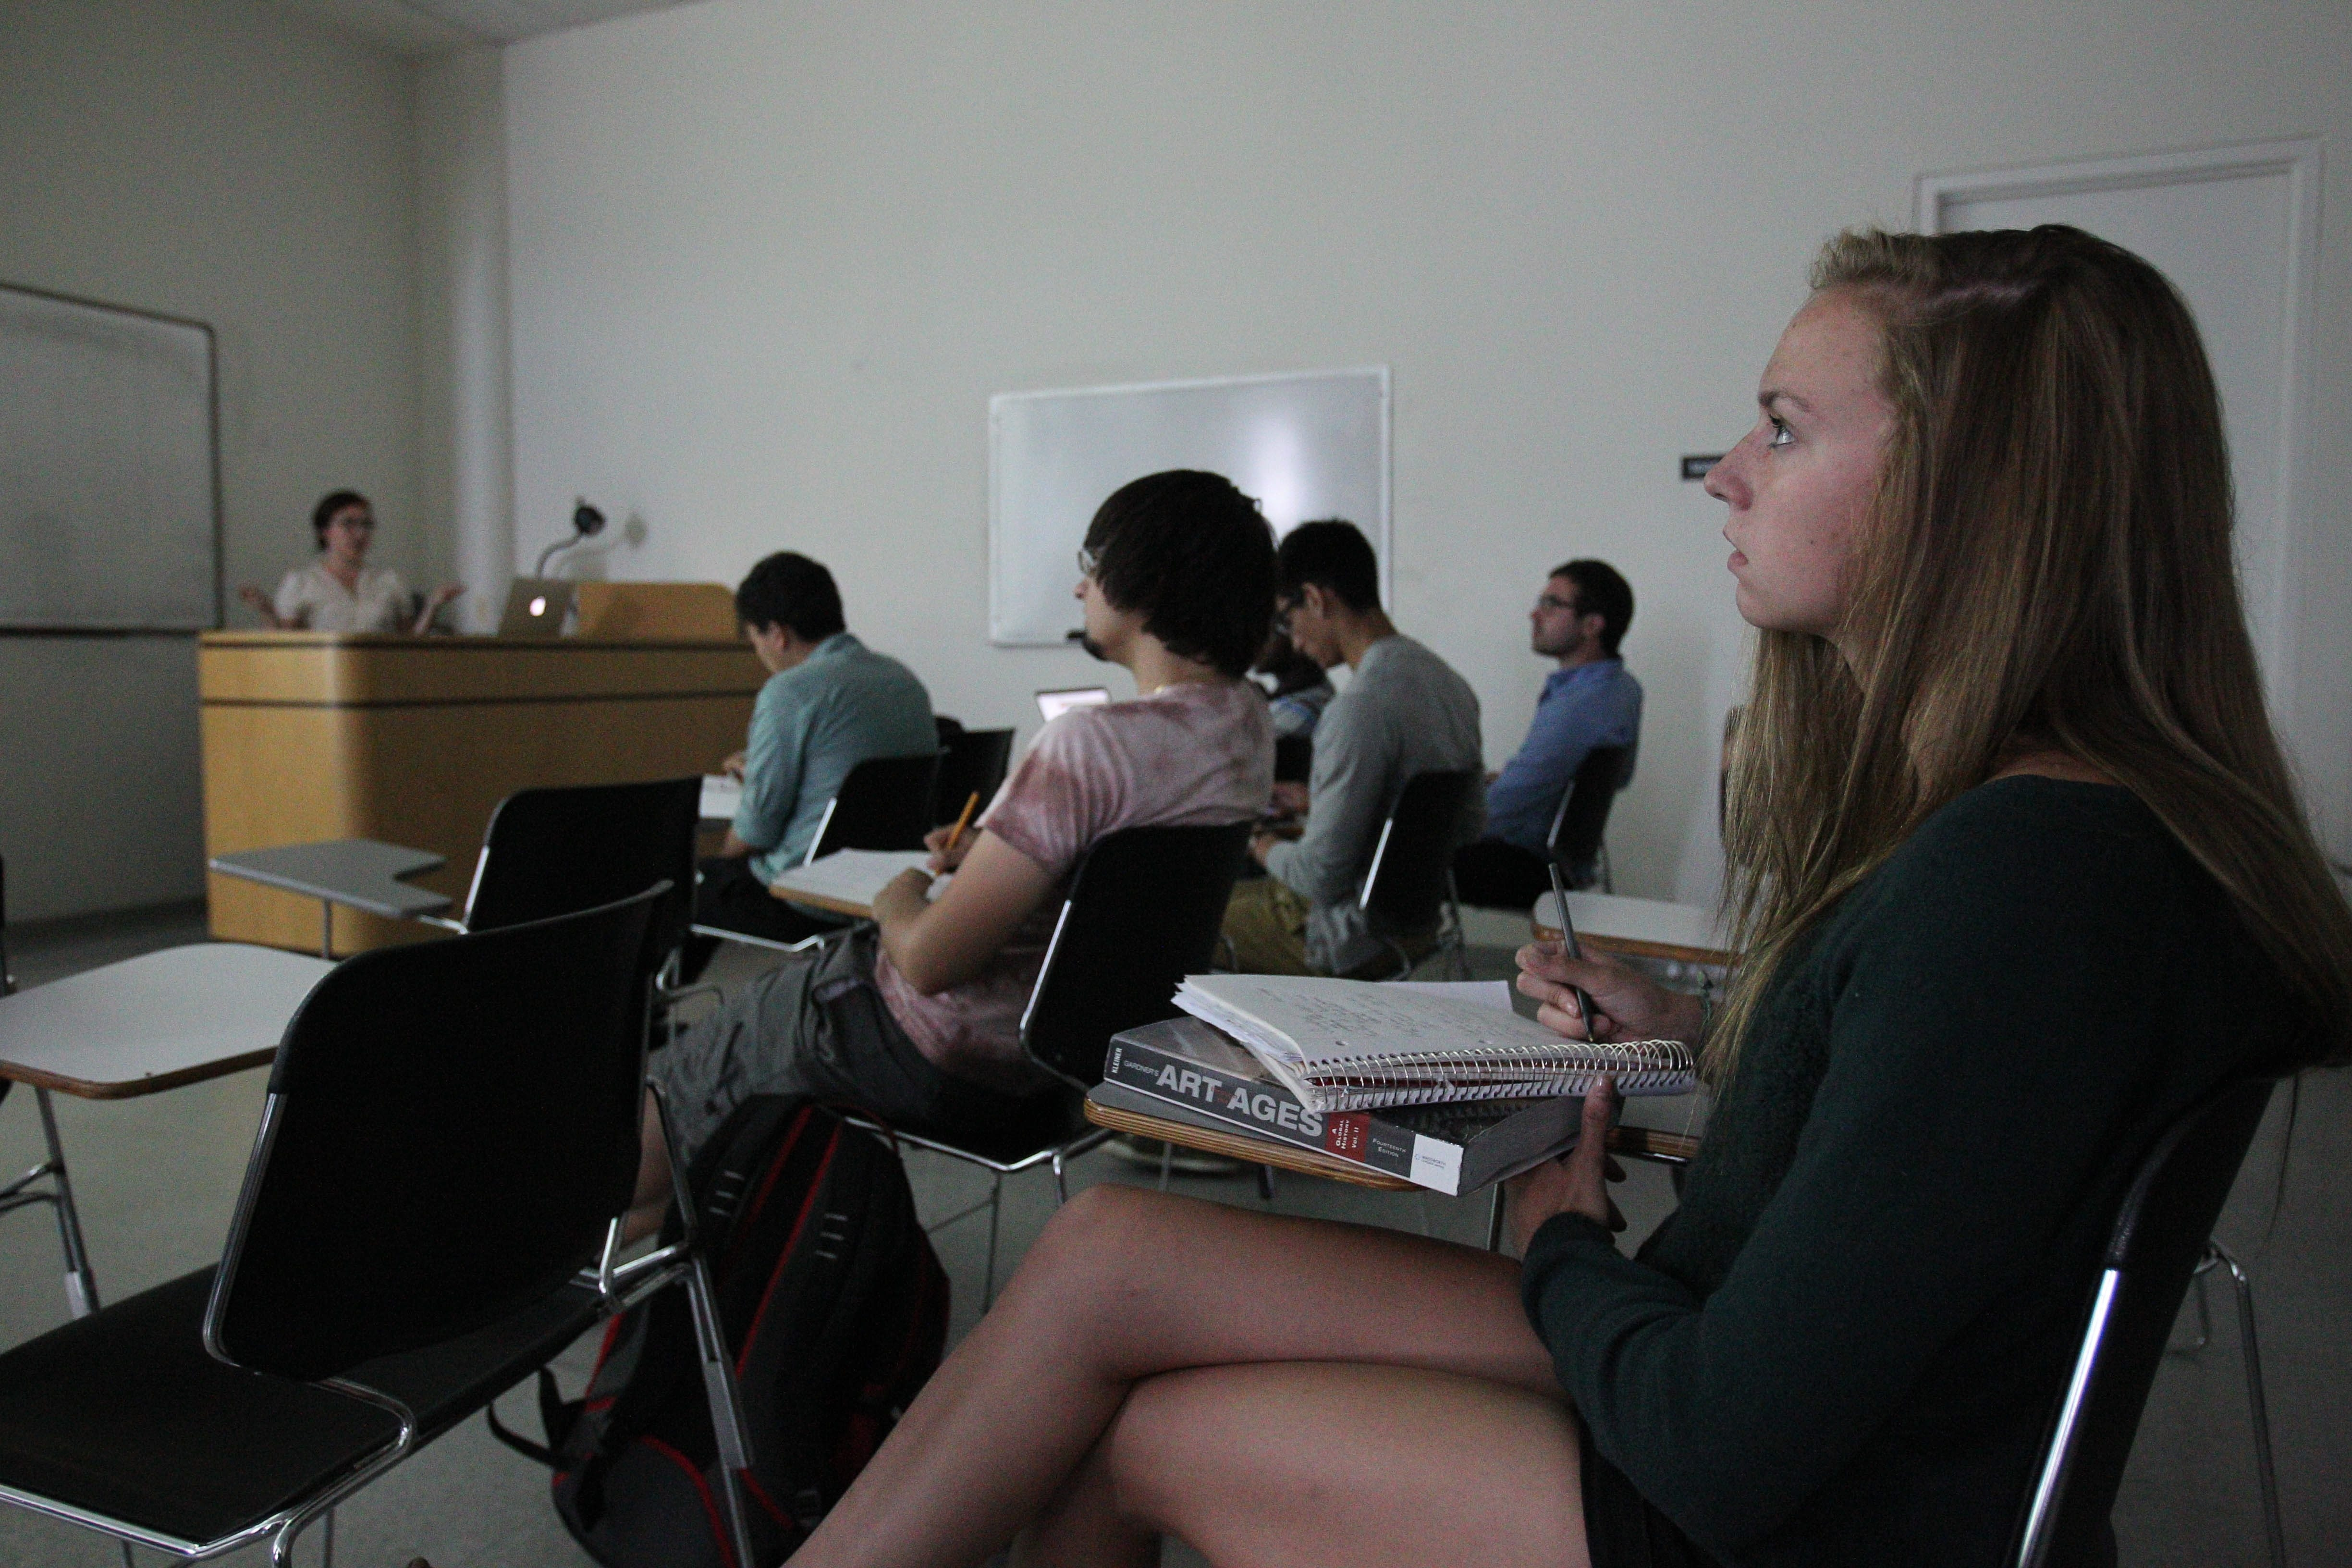 Kelsey Ables took an art history class at UB this summer.  She's listening to a lecture,Tuesday, July 30, 2013. Here the class is listening to a lecture while looking at slides of artwork.  (Sharon Cantillon/Buffalo News)